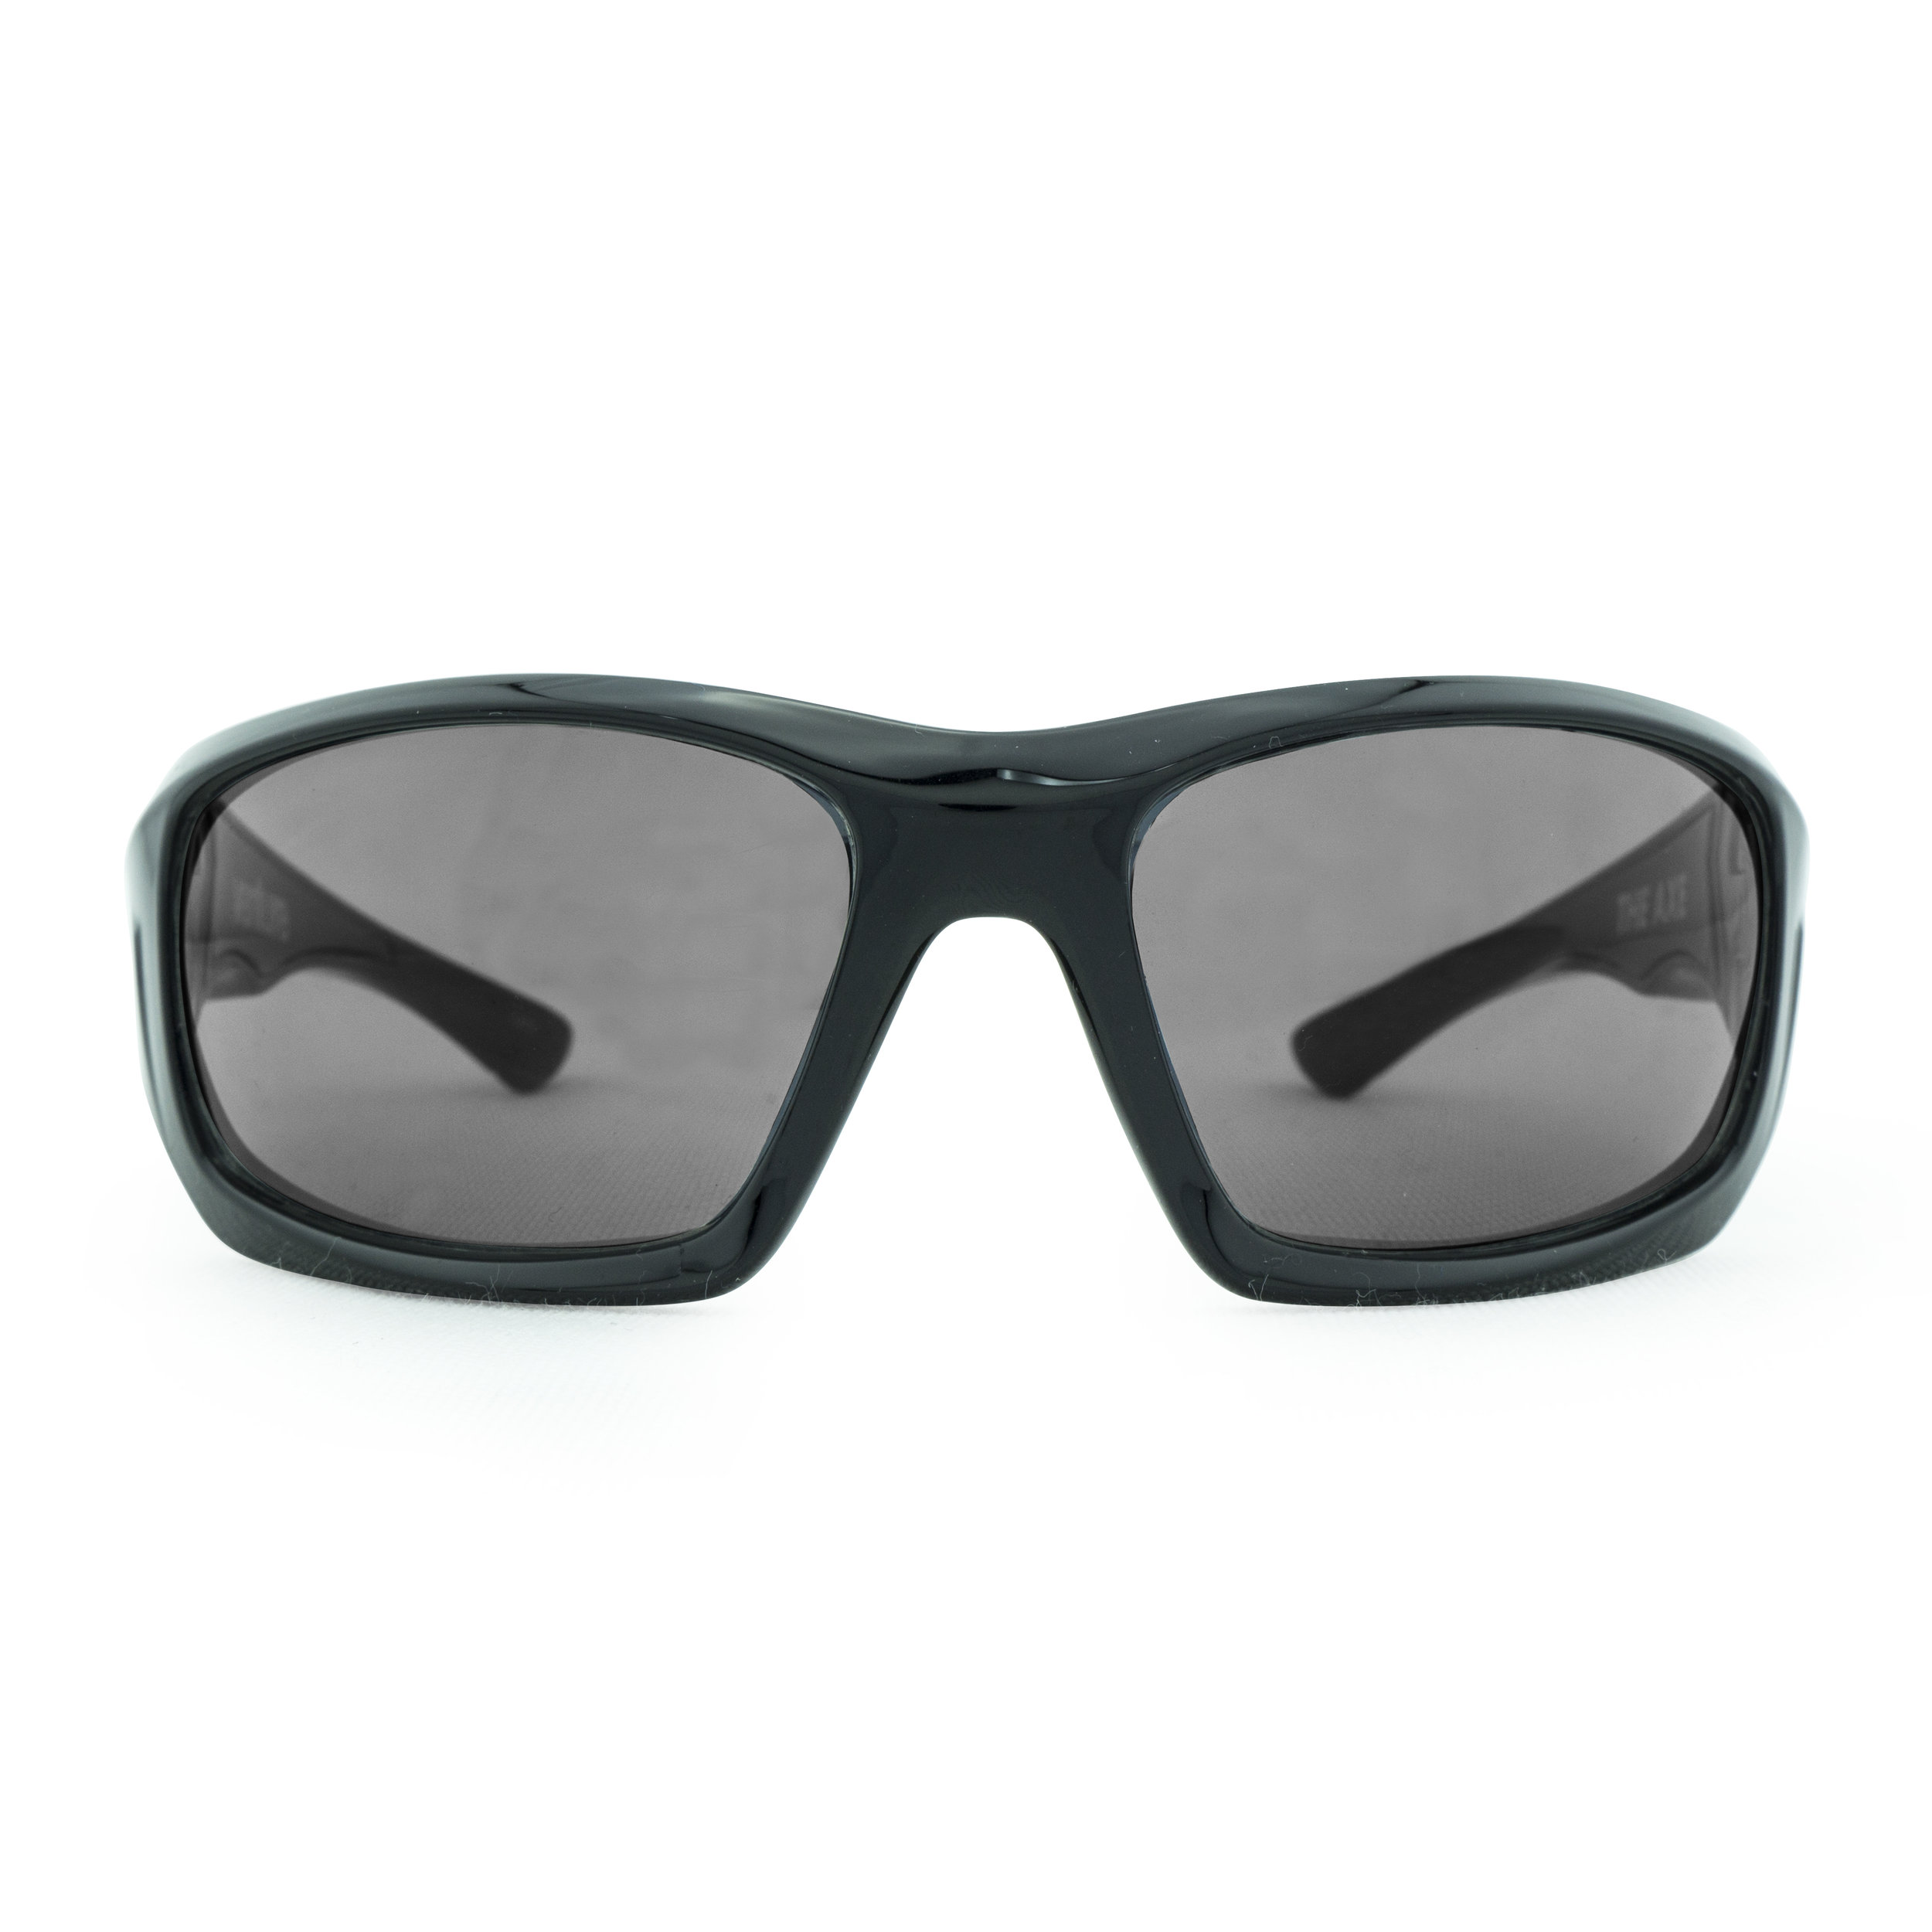 THE AXE-3863-Glossy Black-ip-002-Front.jpg